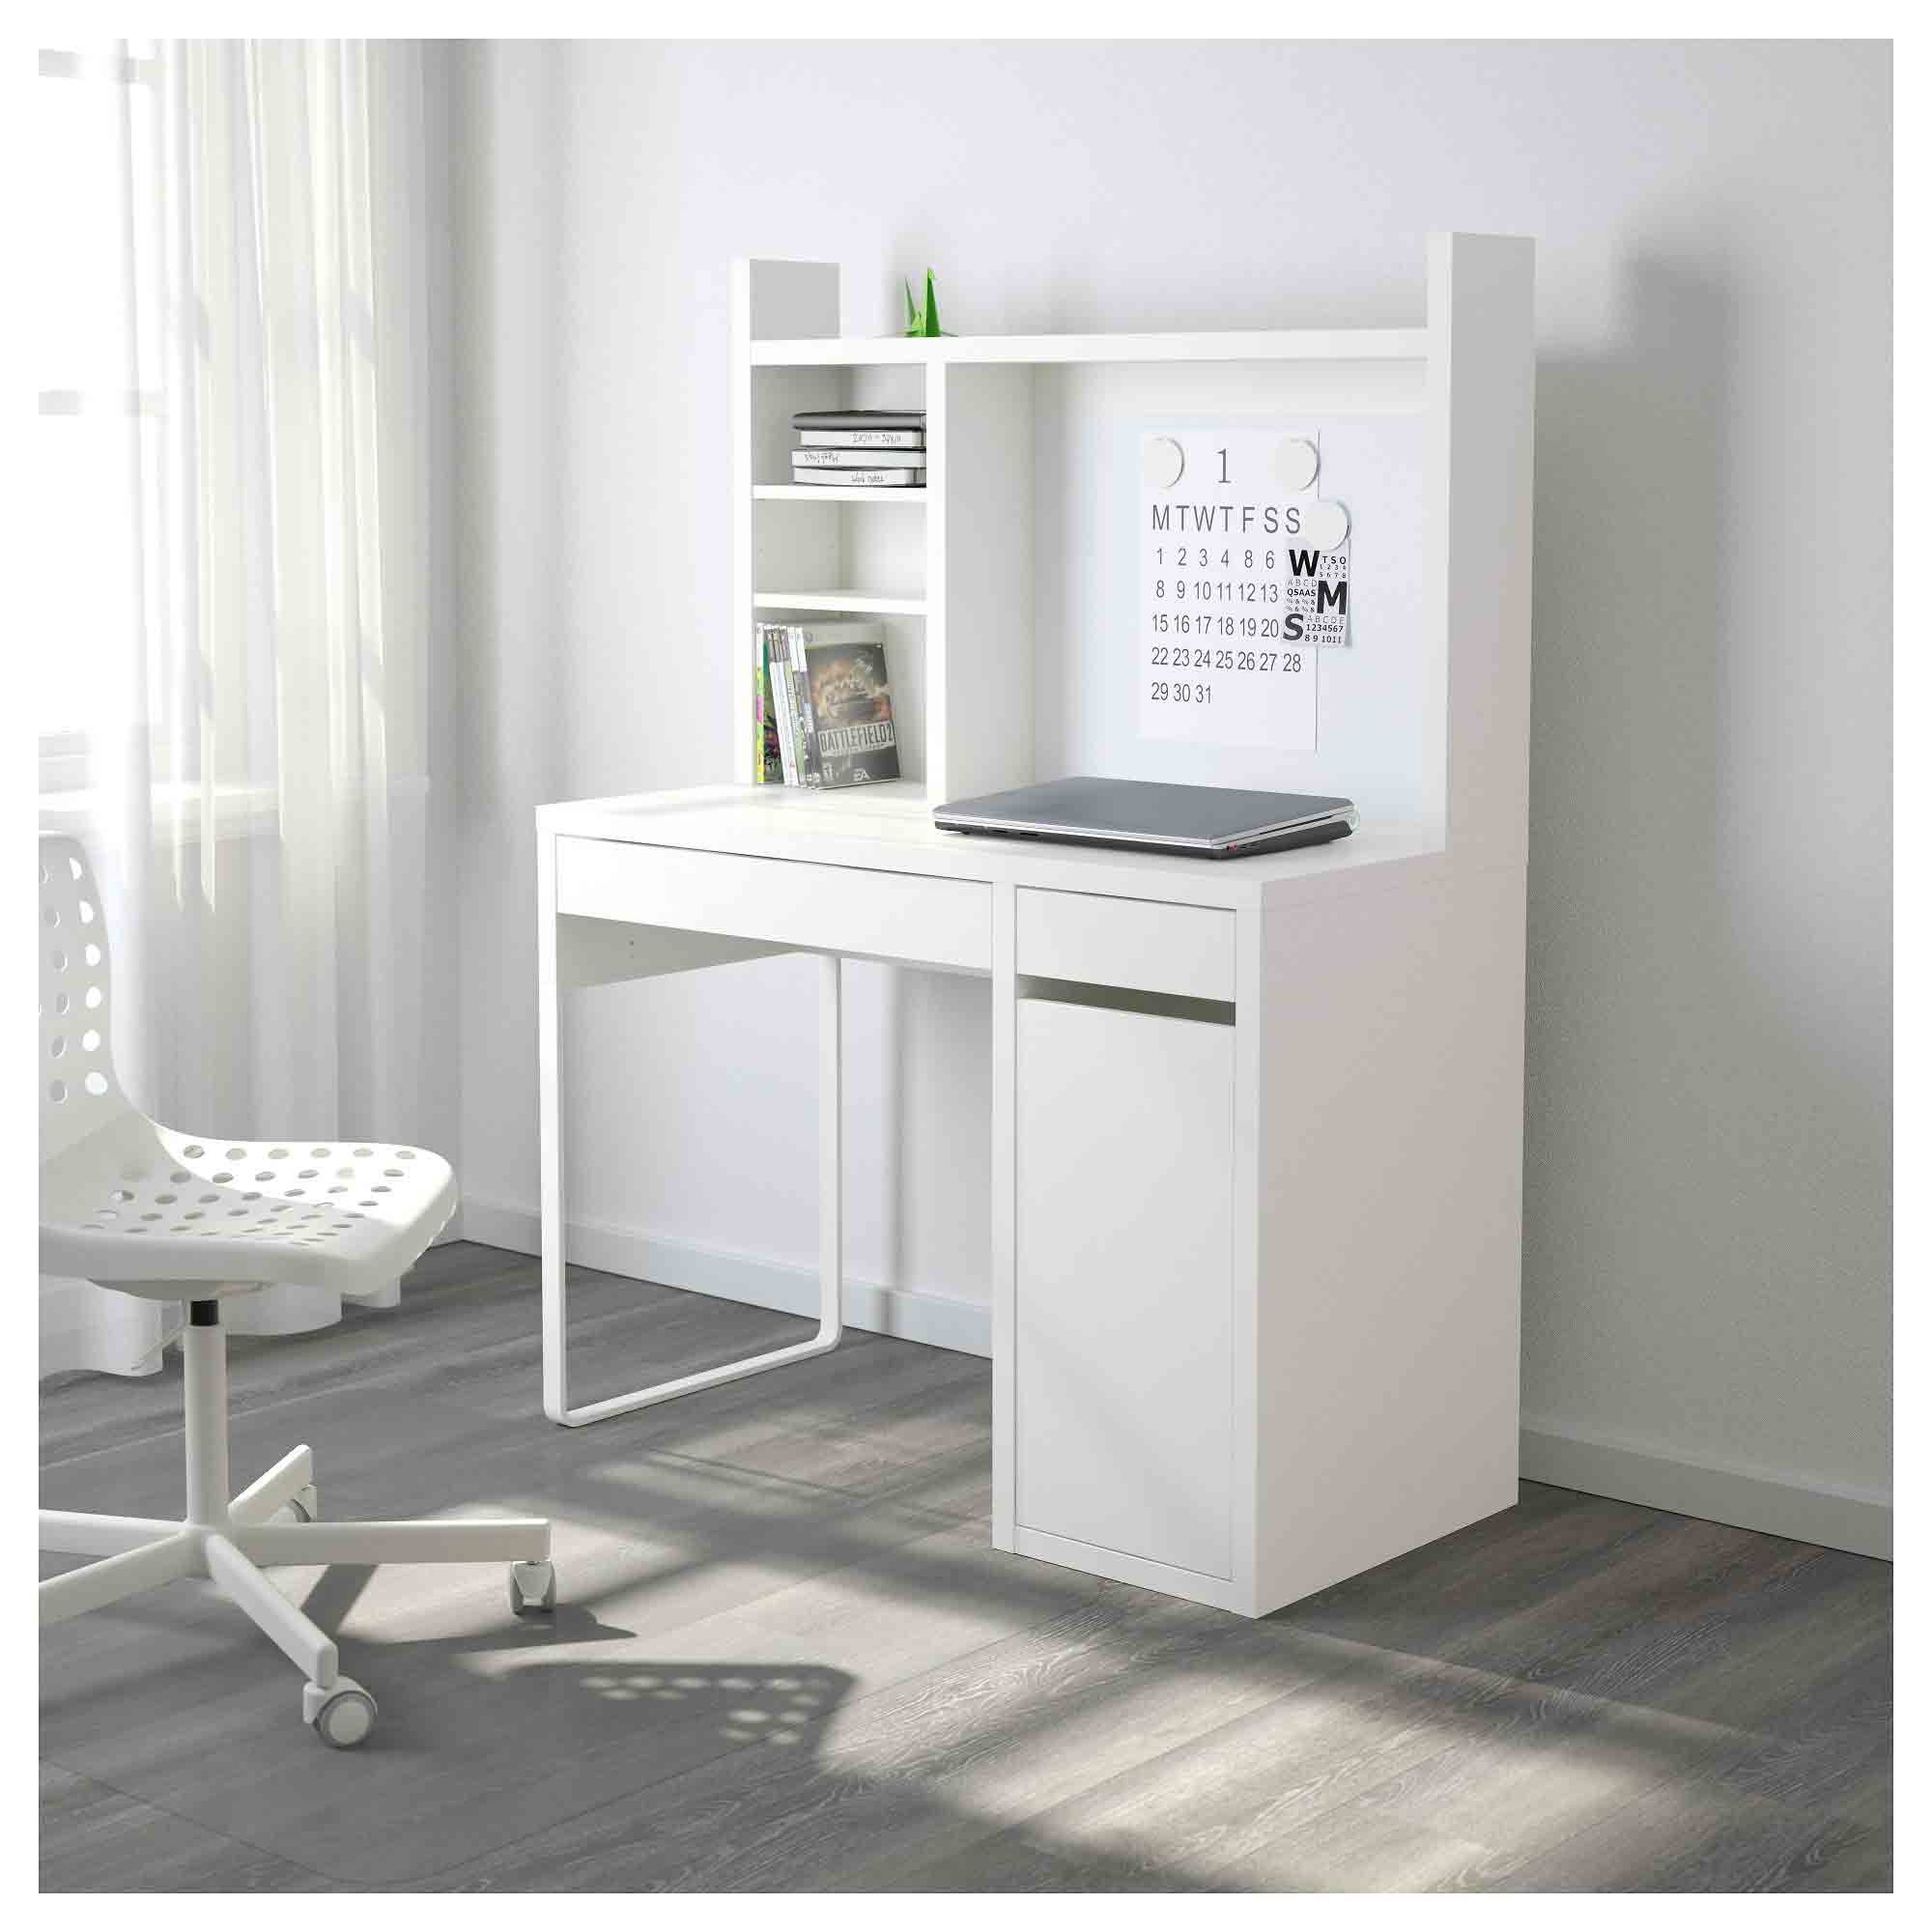 . Review of IKEA Micke Desk and Computer Station